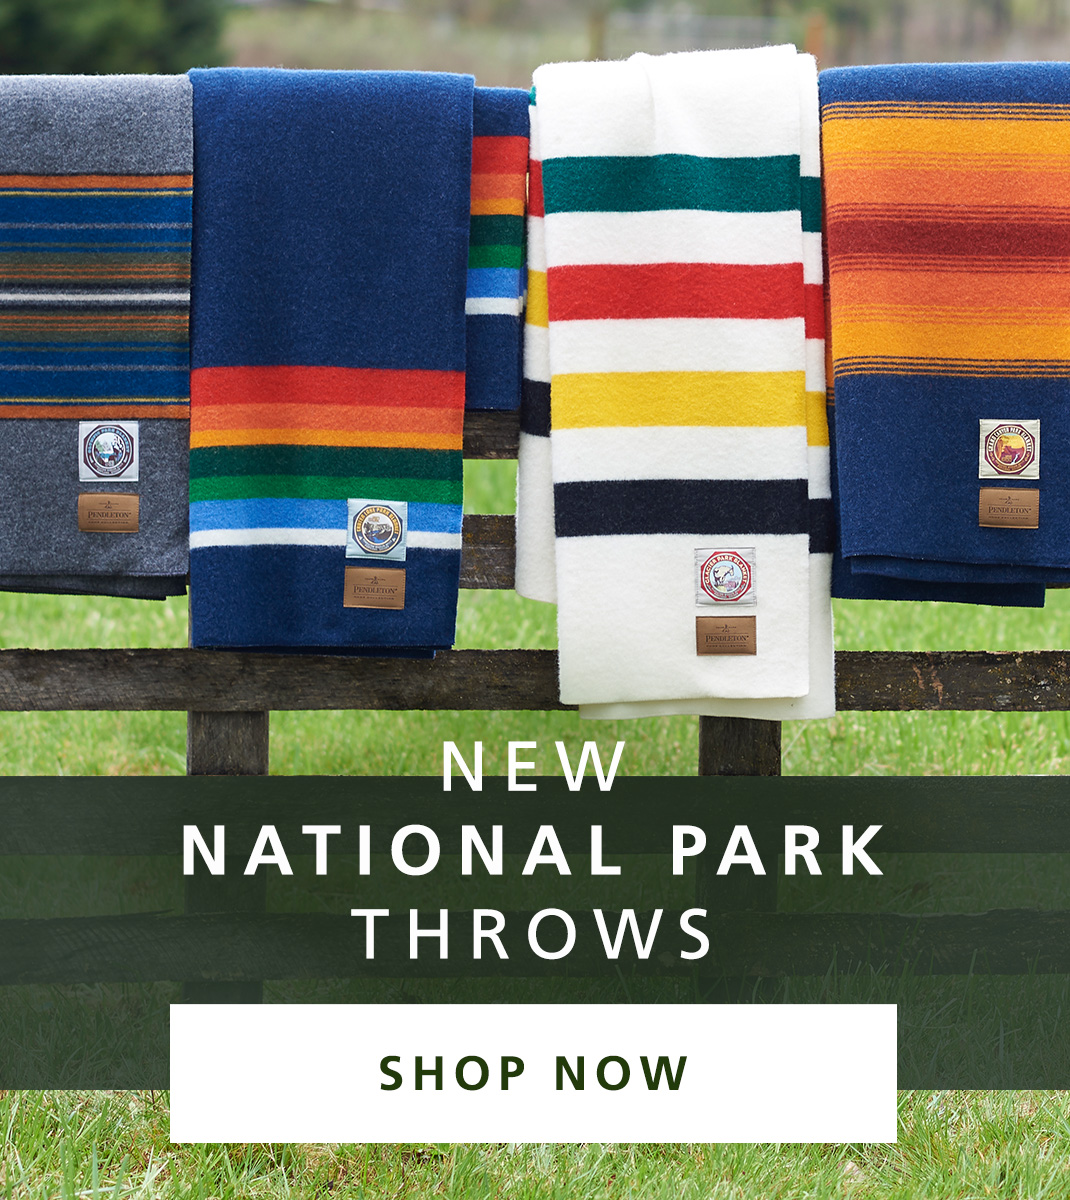 Wool Clothing | Wool Blankets & Southwestern Decor | Pendleton